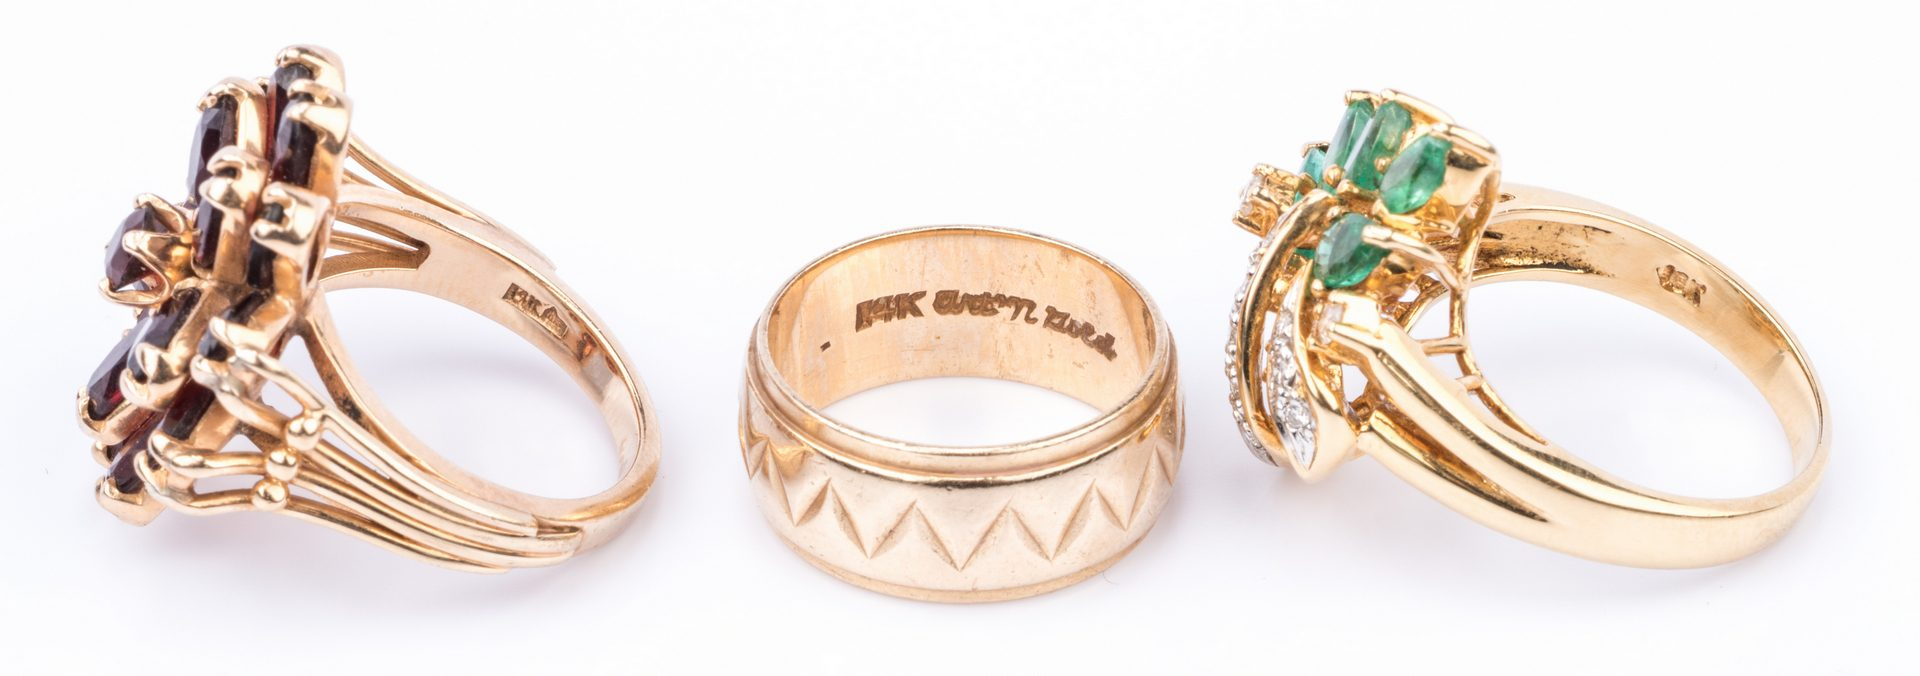 Lot 216: 7 14K Cocktail Rings; 1 14K Band